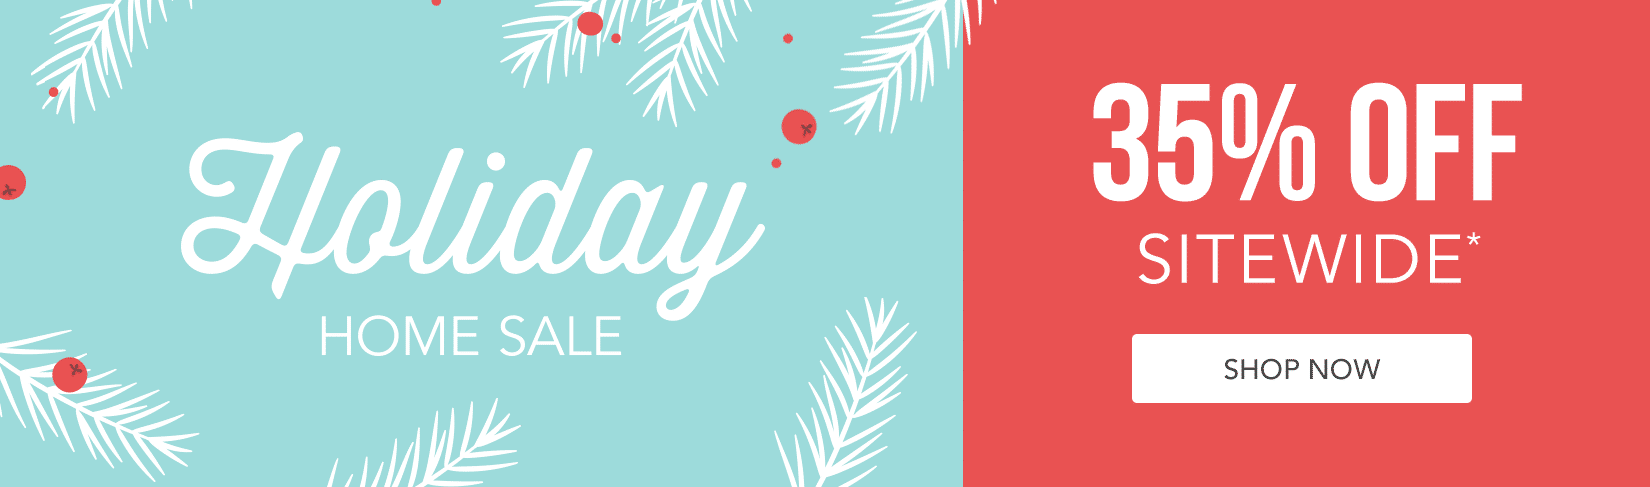 Holiday Home Sale | 35% off Sitewide*